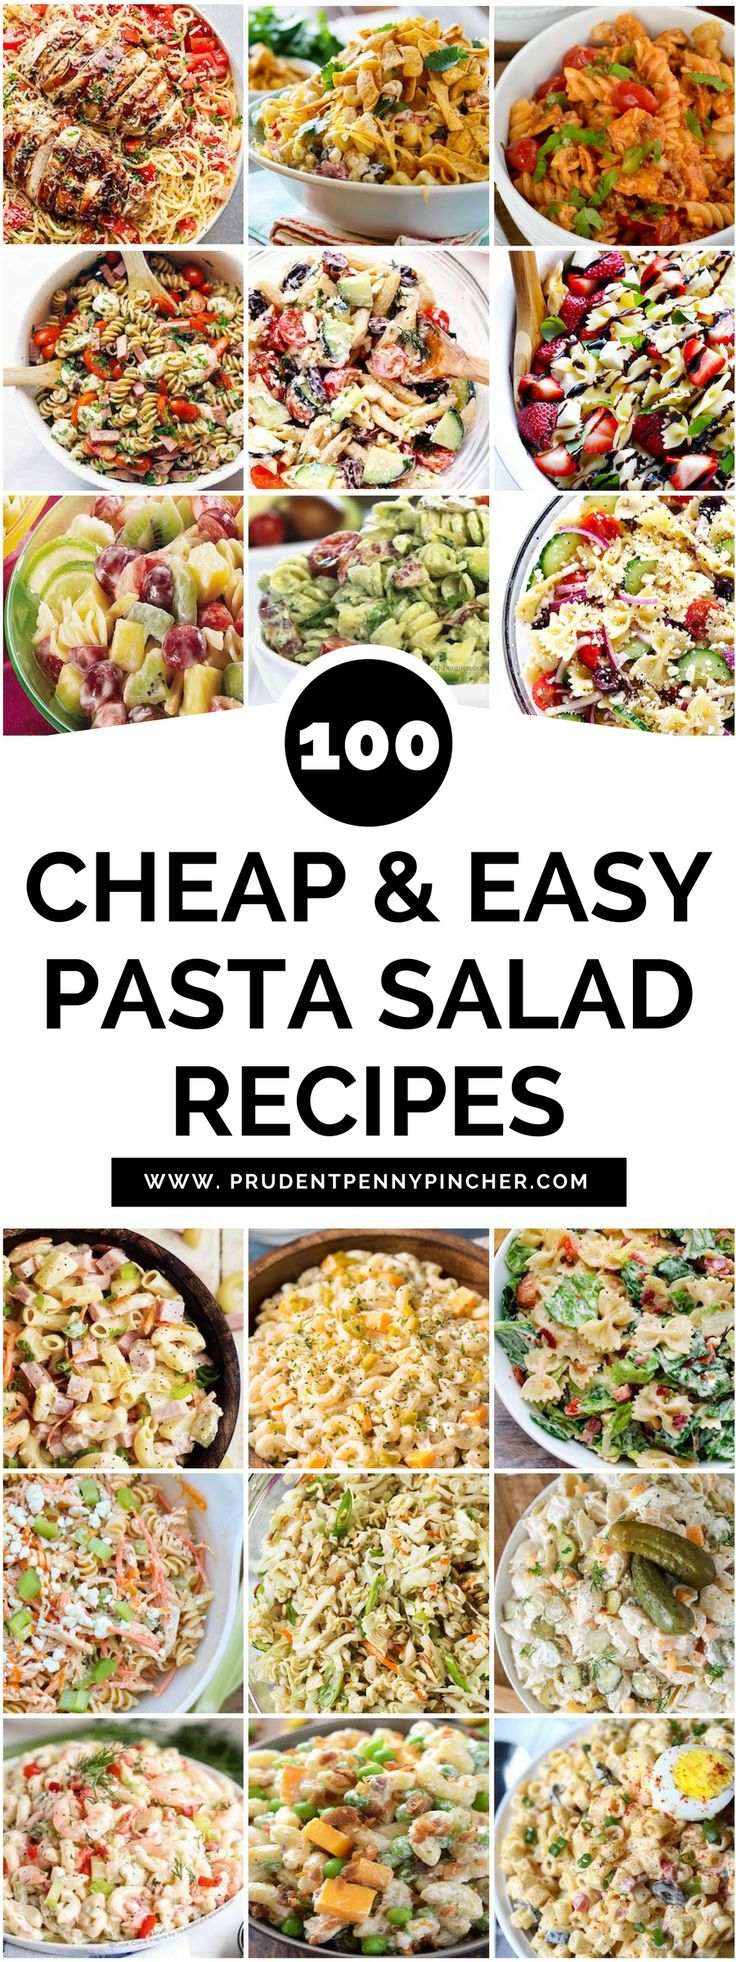 100 Cheap and Easy Pasta Salad Recipes